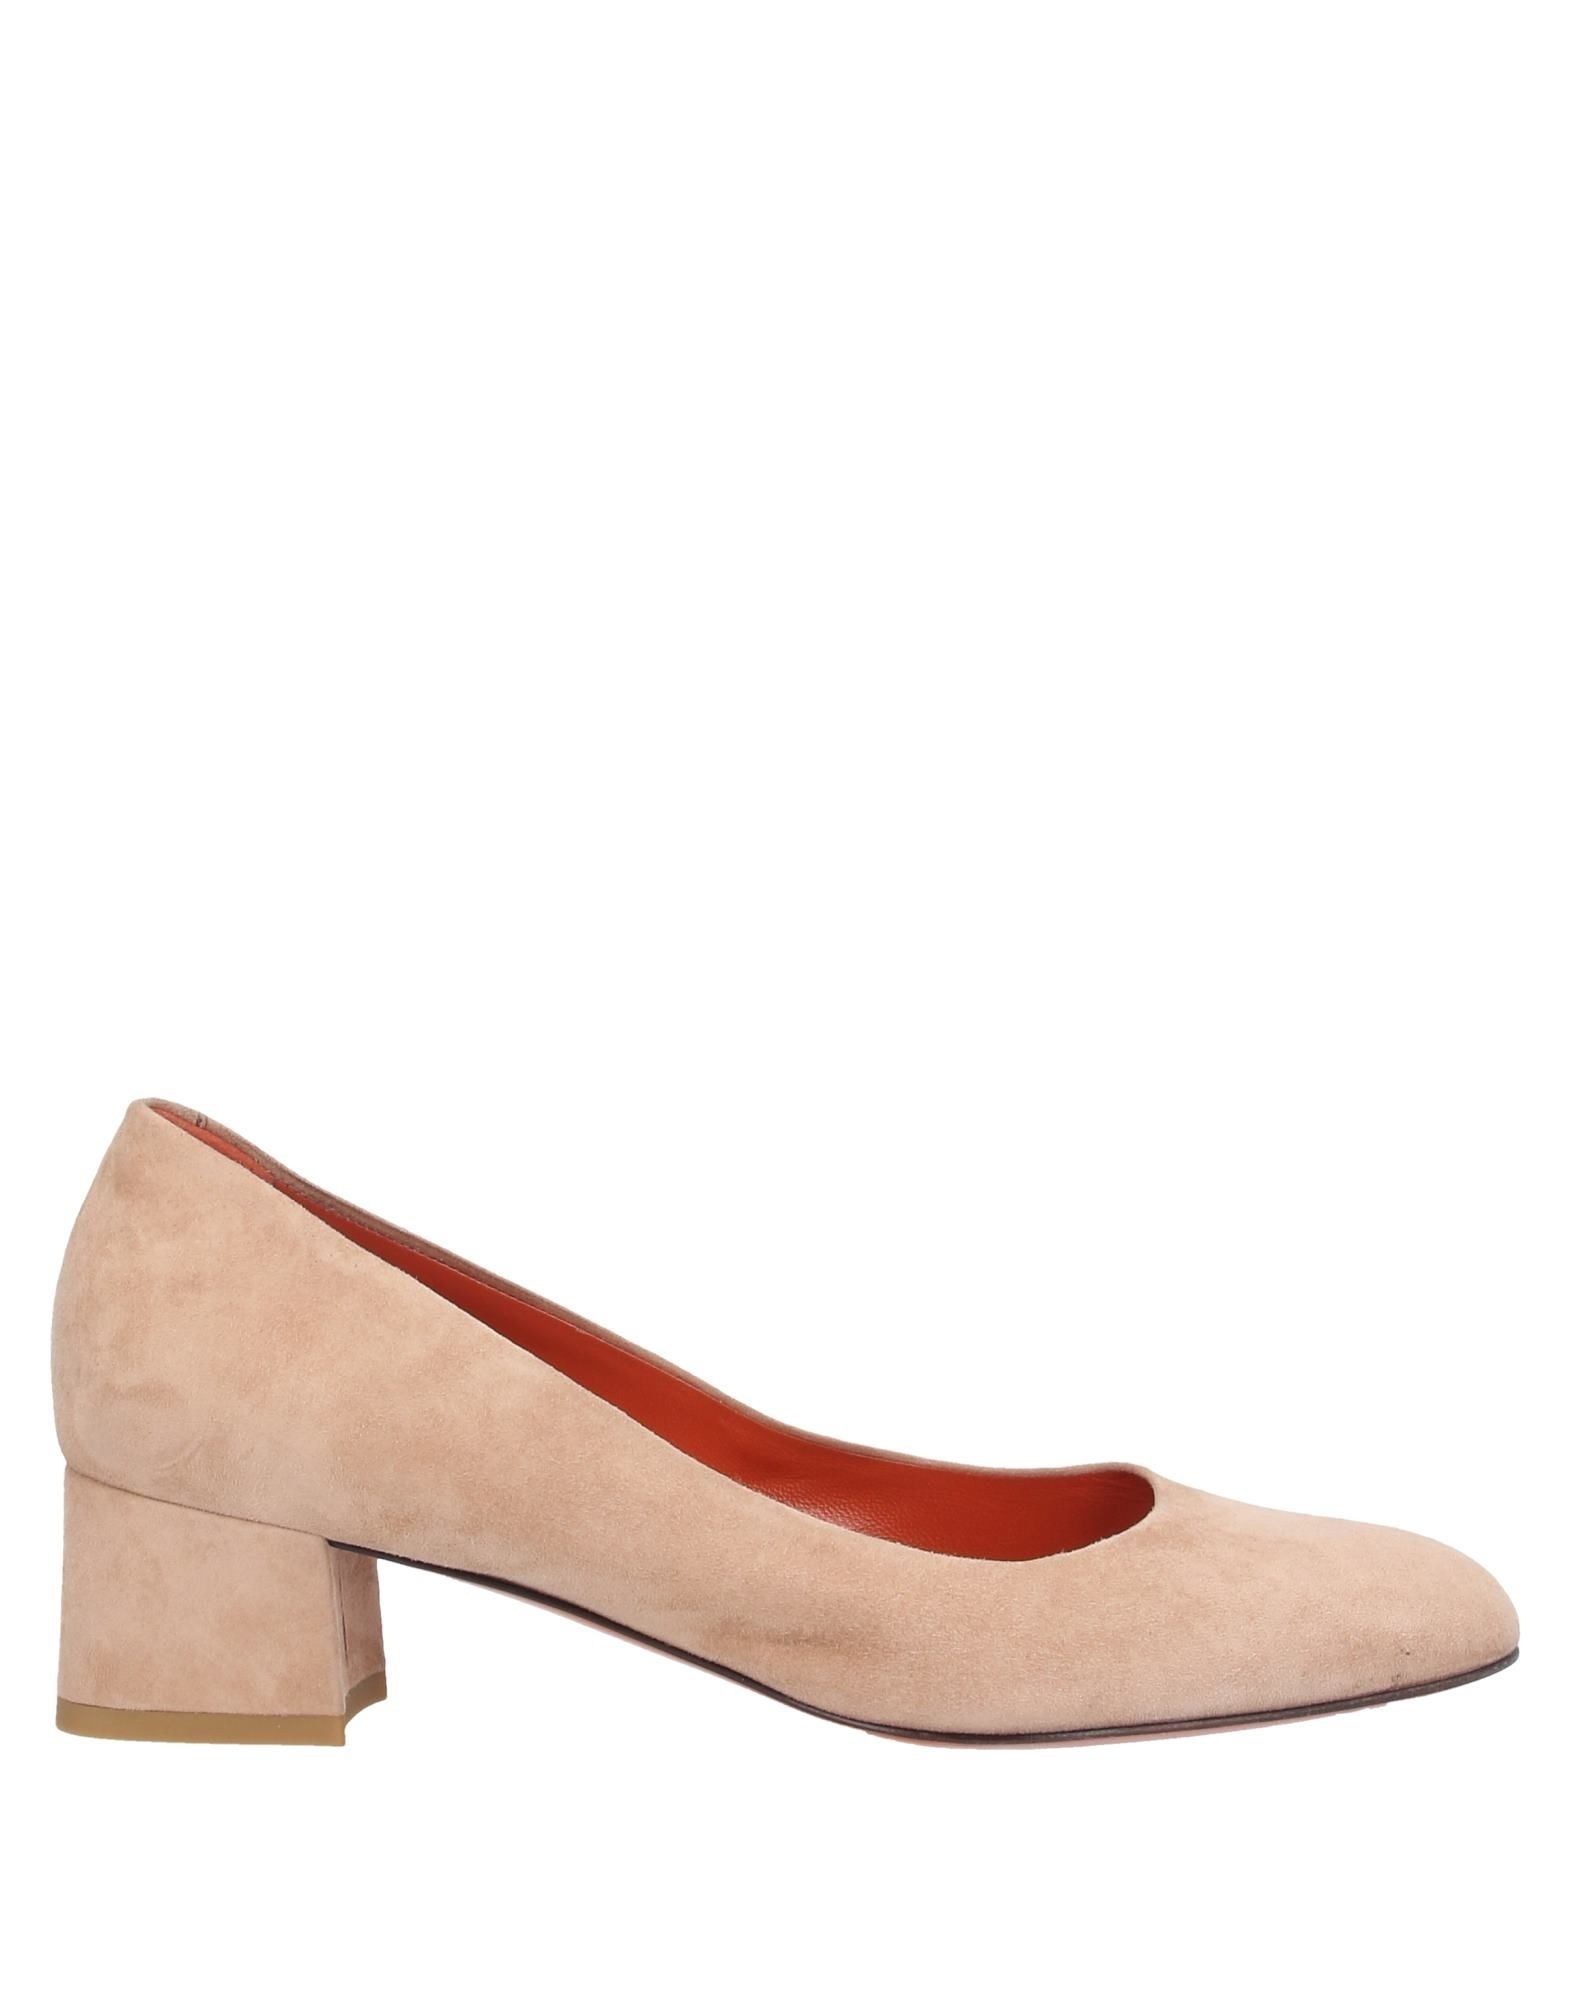 SANTONI Pumps. leather, nubuck, no appliqués, solid color, round toeline, square heel, leather lining, leather sole, large sized, contains non-textile parts of animal origin. Soft Leather